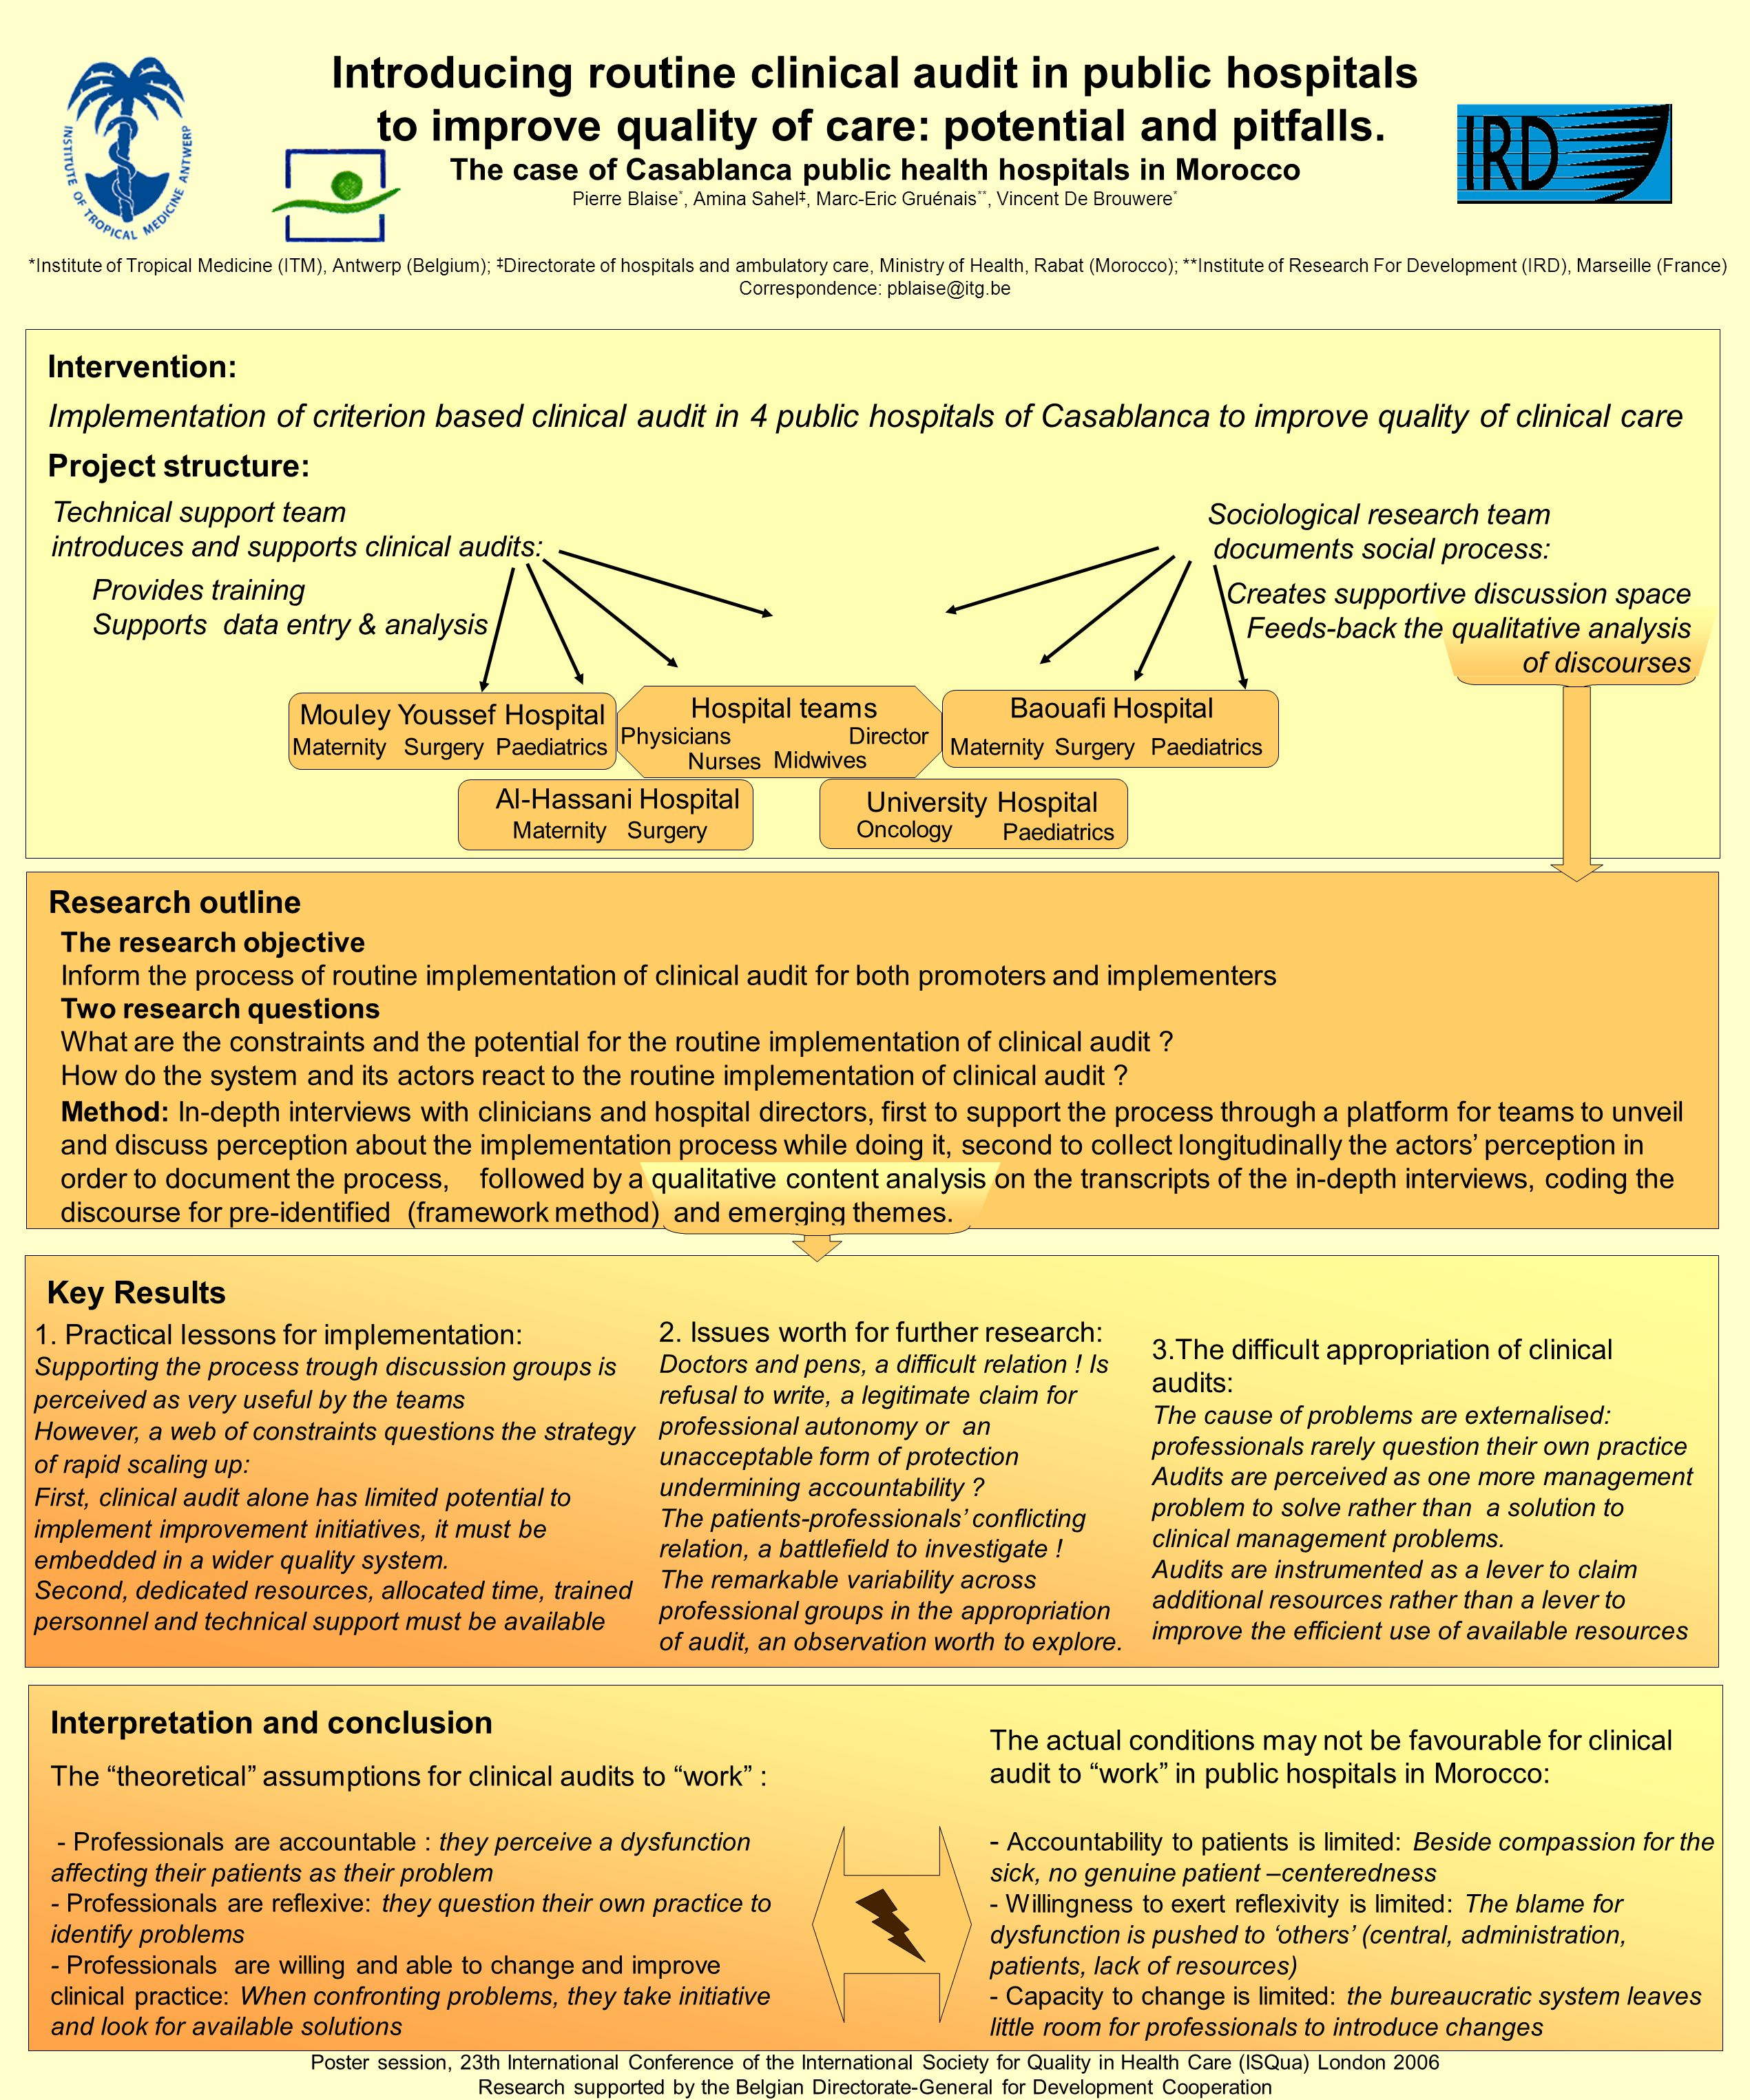 Interpretation and conclusion Research outline Intervention: Implementation of criterion based clinical audit in 4 public hospitals of Casablanca to improve quality of clinical care Project structure: Key Results Introducing routine clinical audit in public hospitals to improve quality of care: potential and pitfalls.